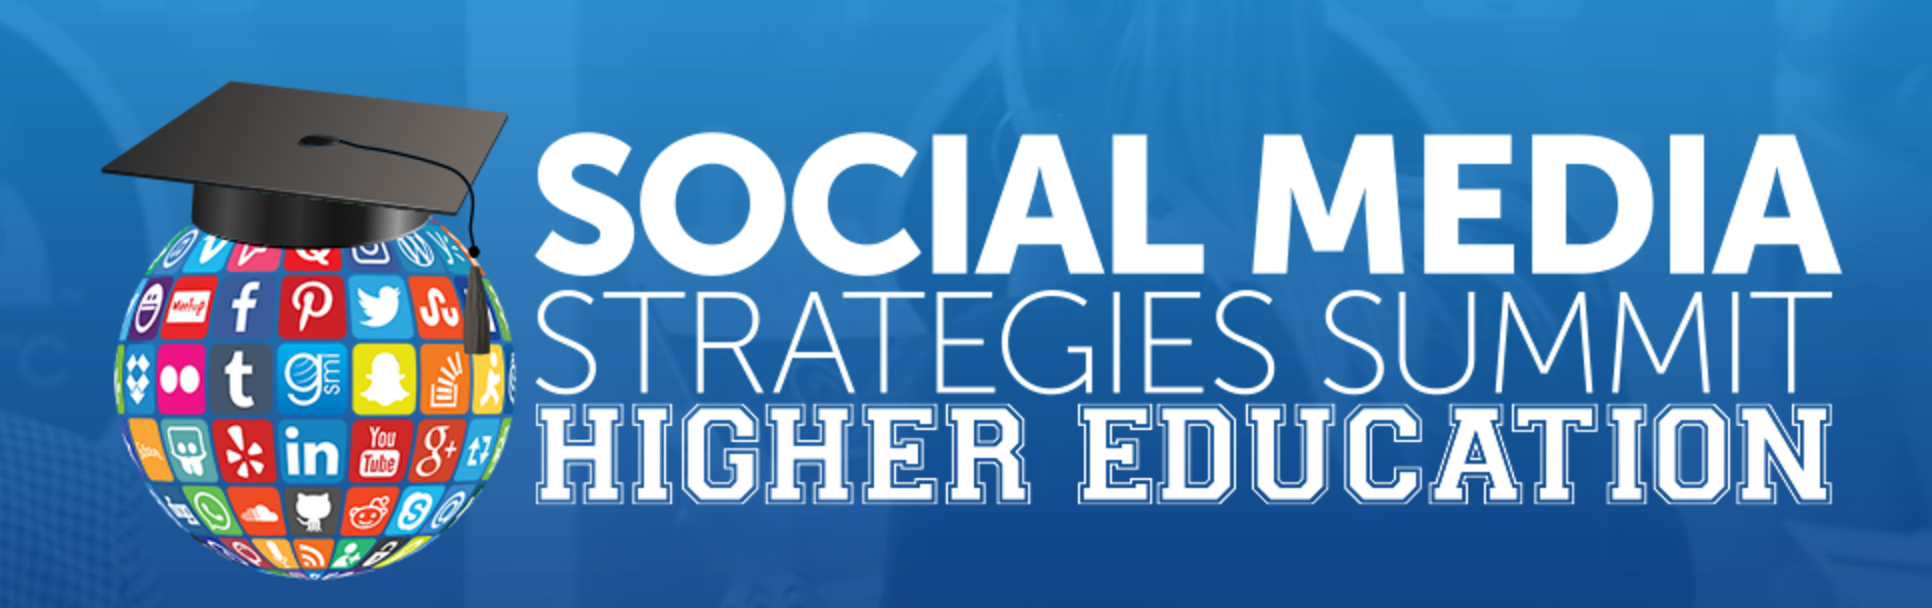 Digital Skillscast Social Media Strategies Summit Higher Education